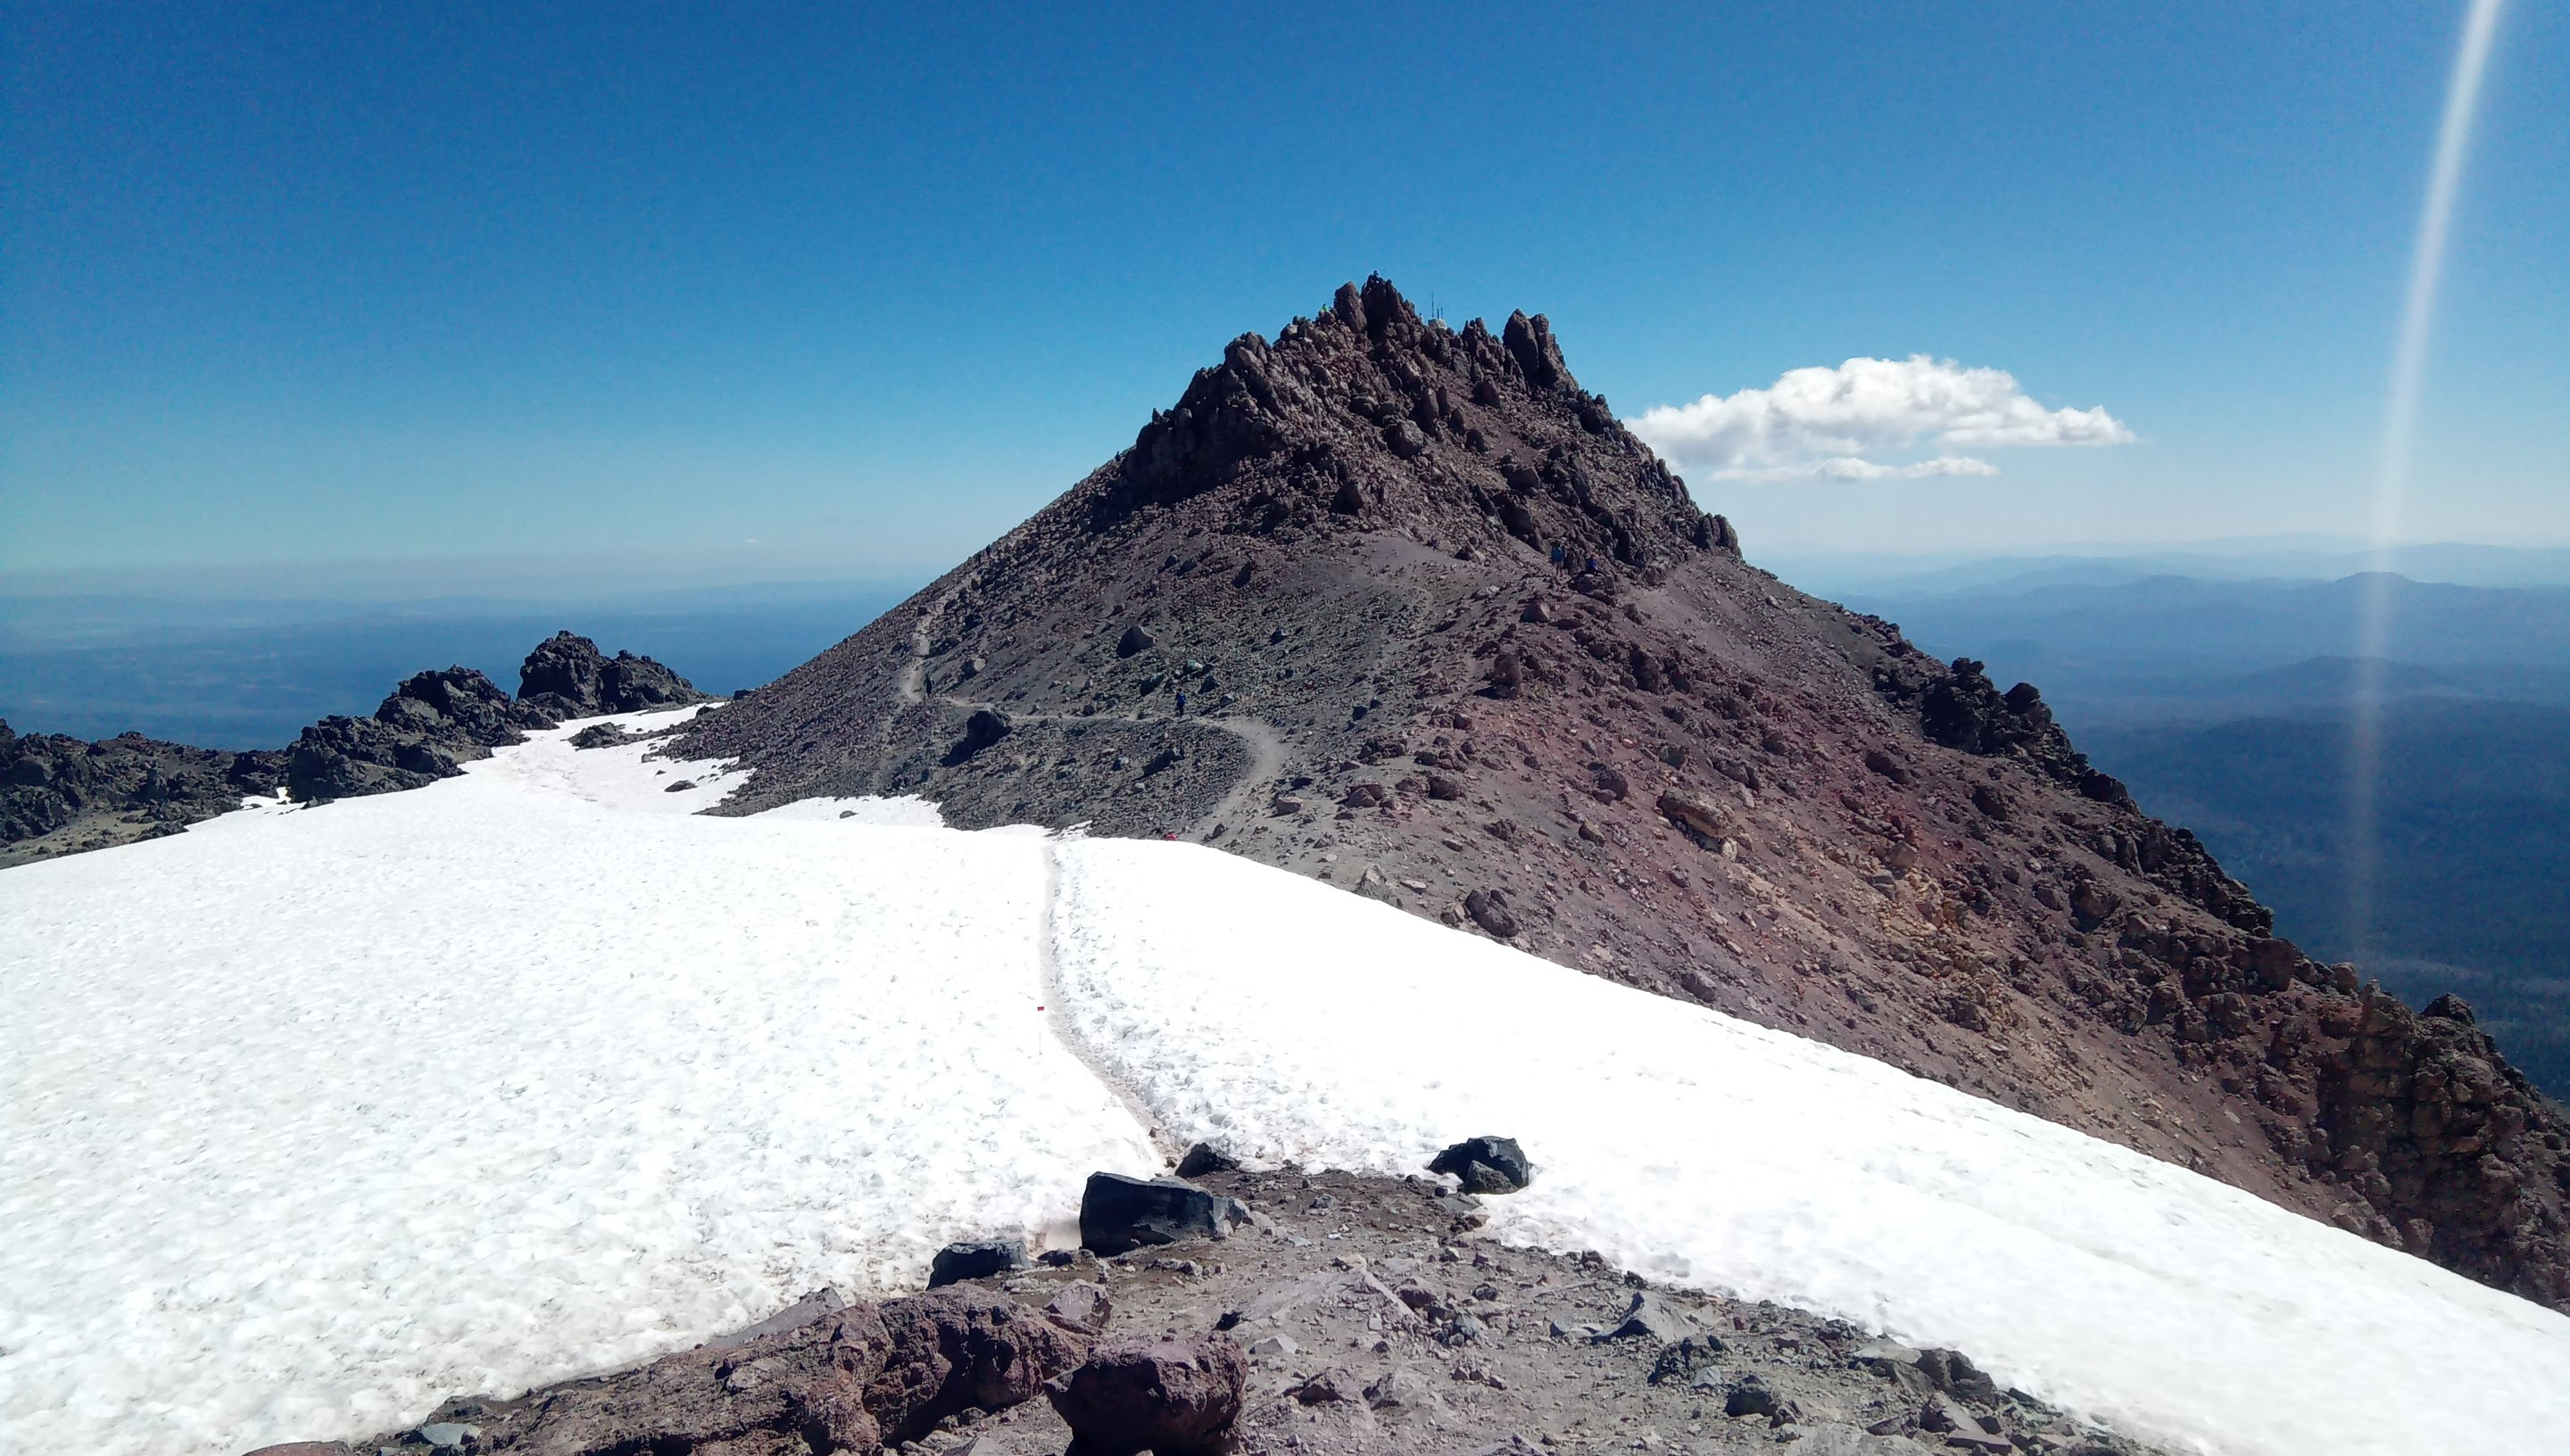 Three days in Lassen - Part 2, Lassen Peak on Independence day 2020